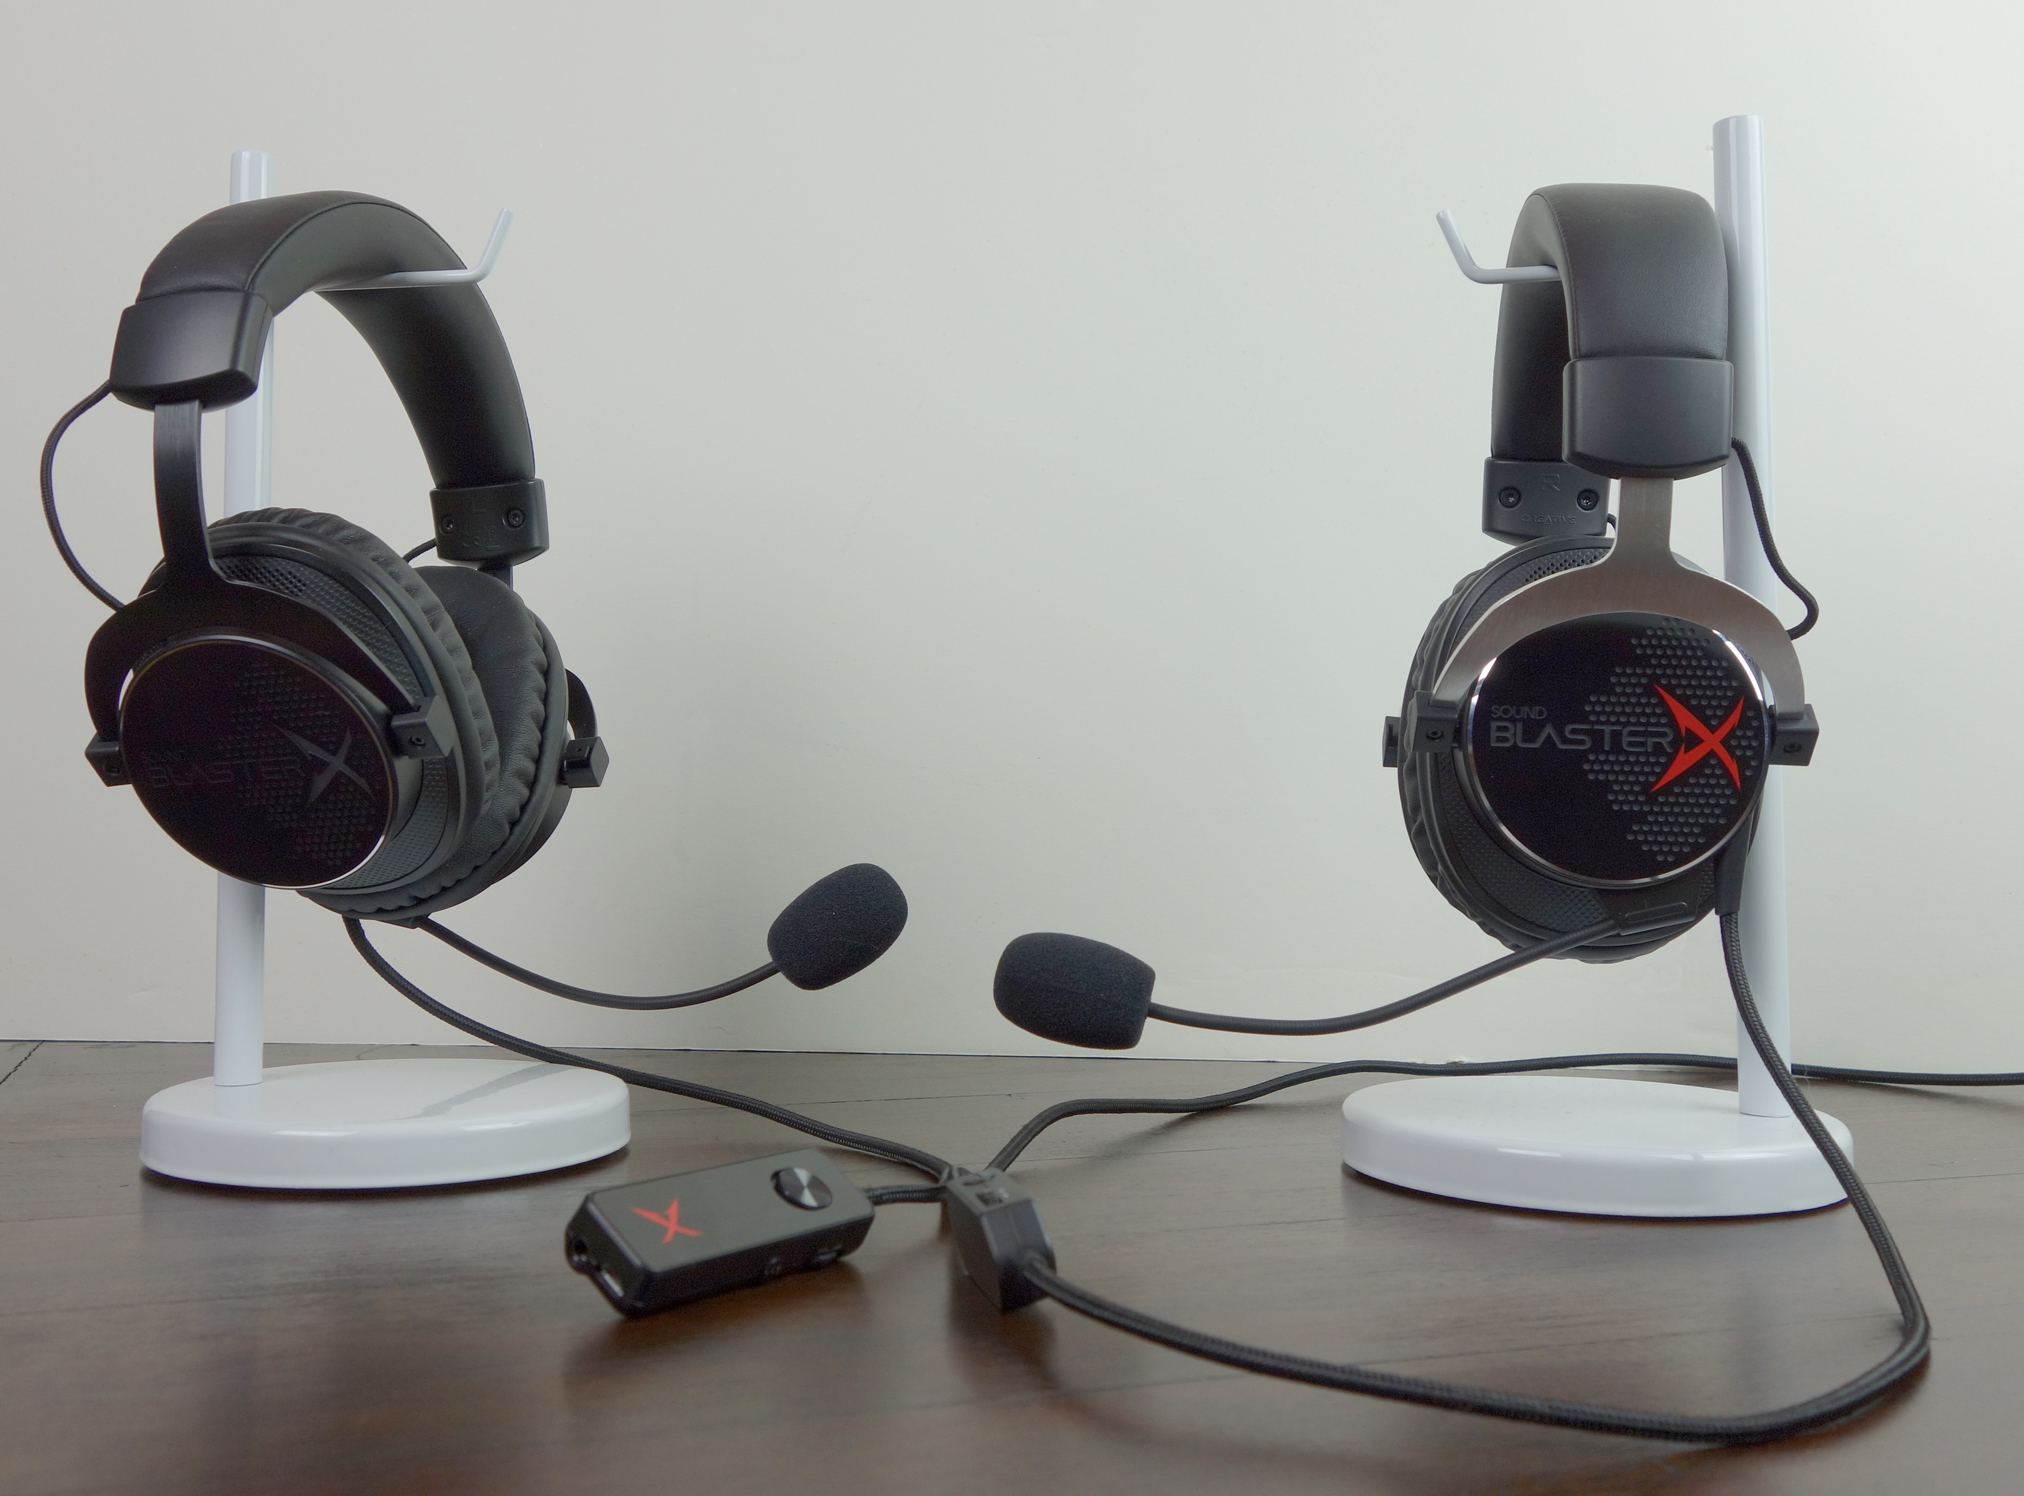 Creative Sound BlasterX H7 and H5